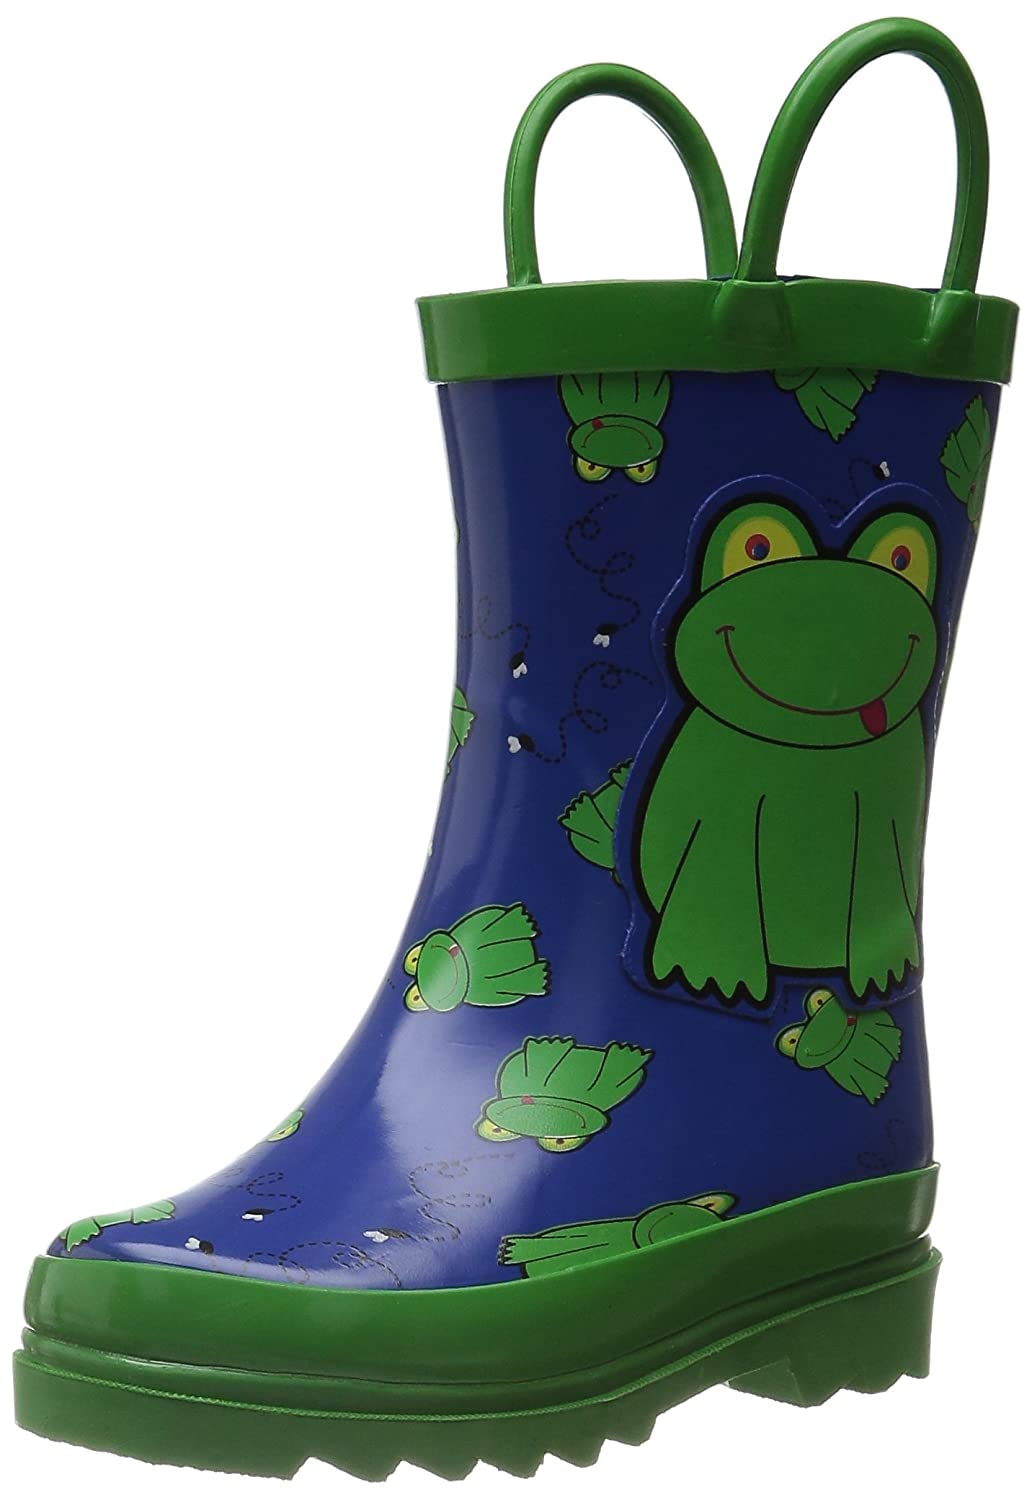 AccessoWear Puddle Play Kids Boys' Green Frog Character Printed Waterproof Easy-On Rubber Rain Boots (Toddler/Little Kids)